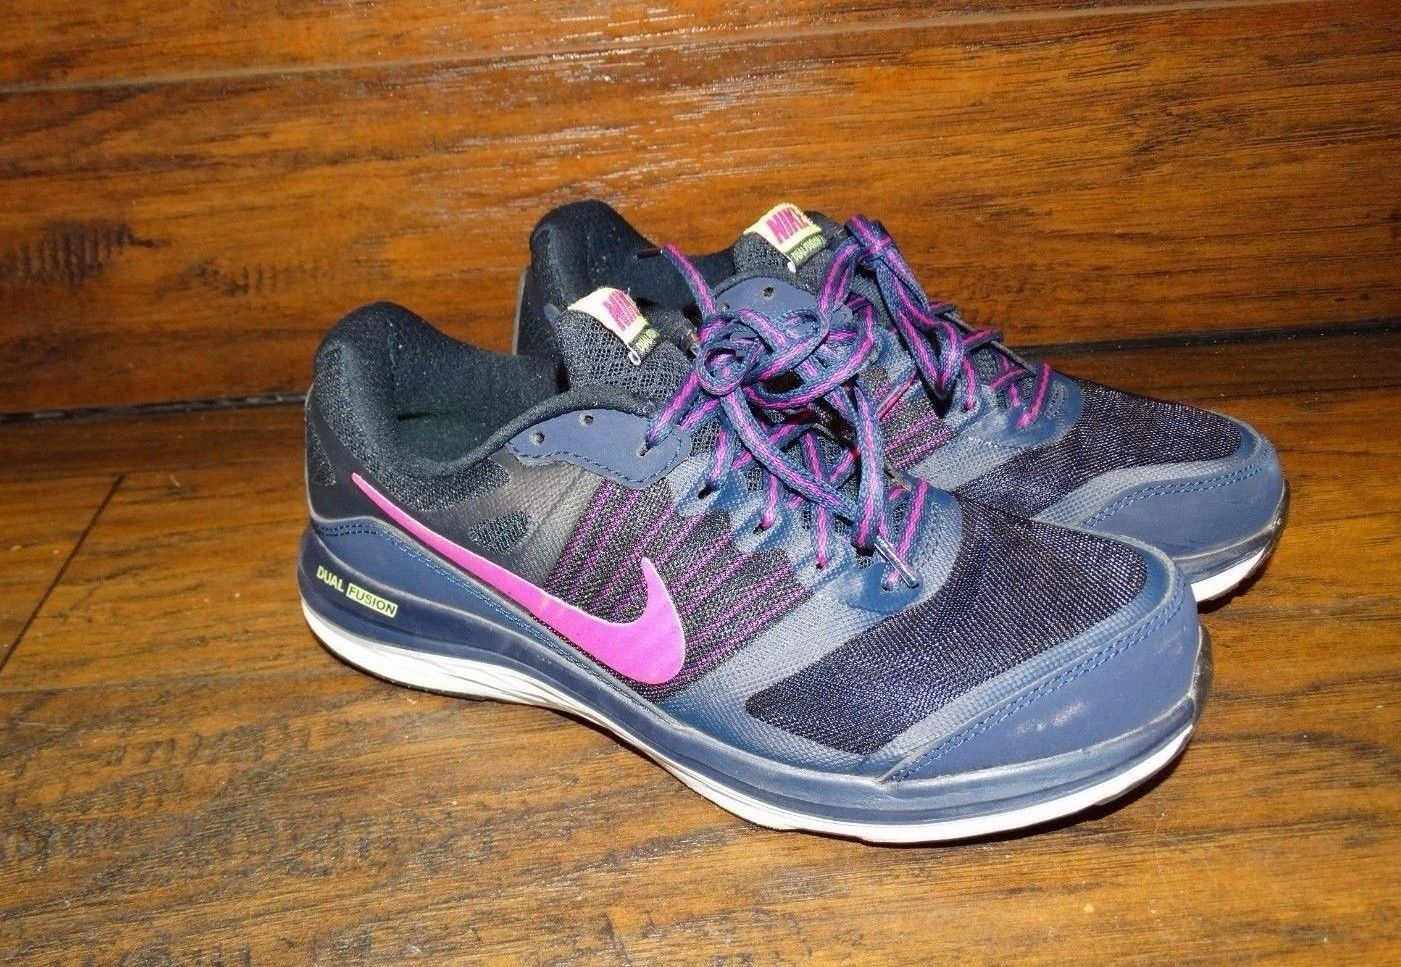 14344  Womens NIKE FLY Dual Fusion X  Running   Training Athletic shoes 7.5